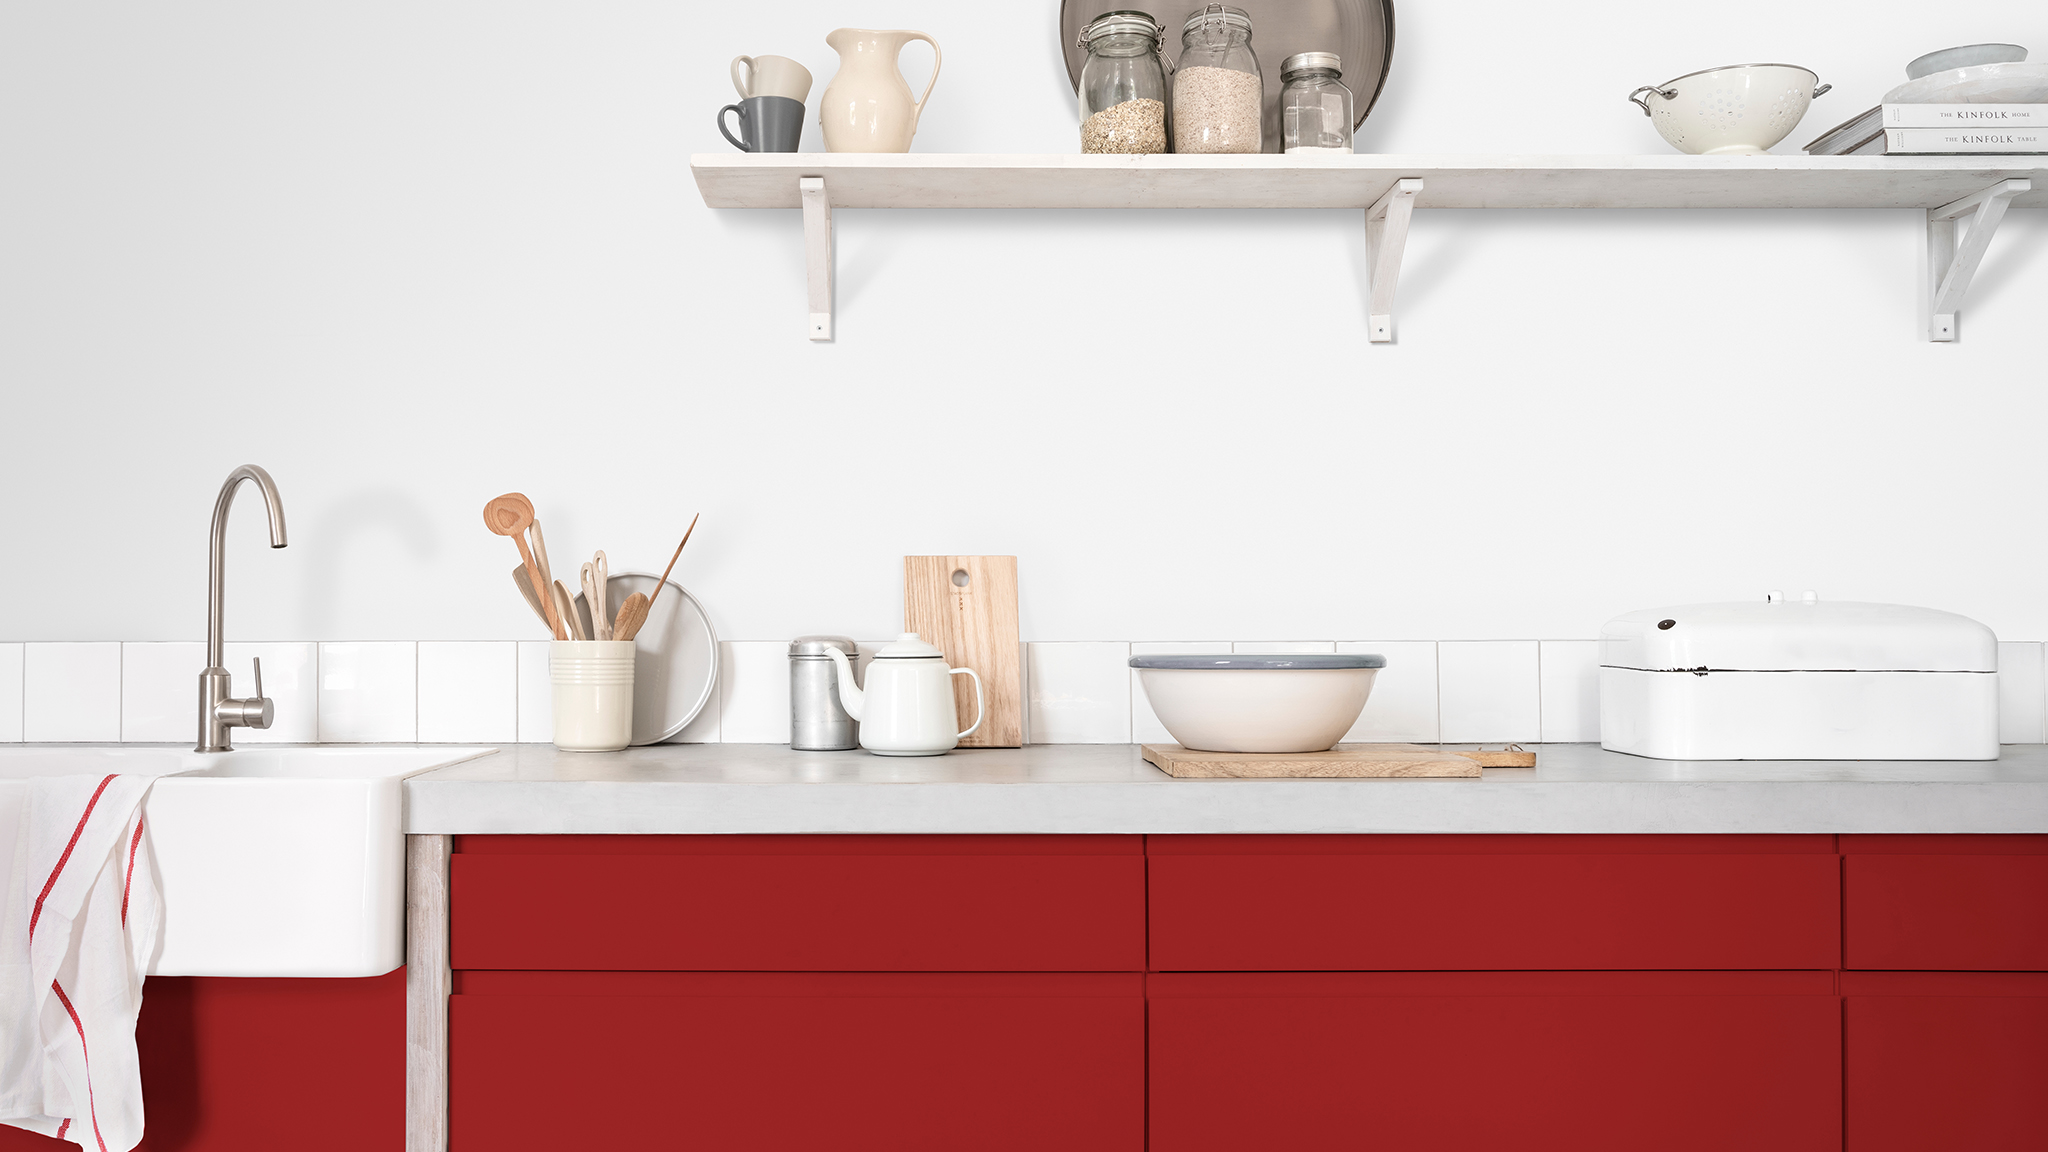 dulux-simply-refresh-kitchen-cabinets-ideas-global-3